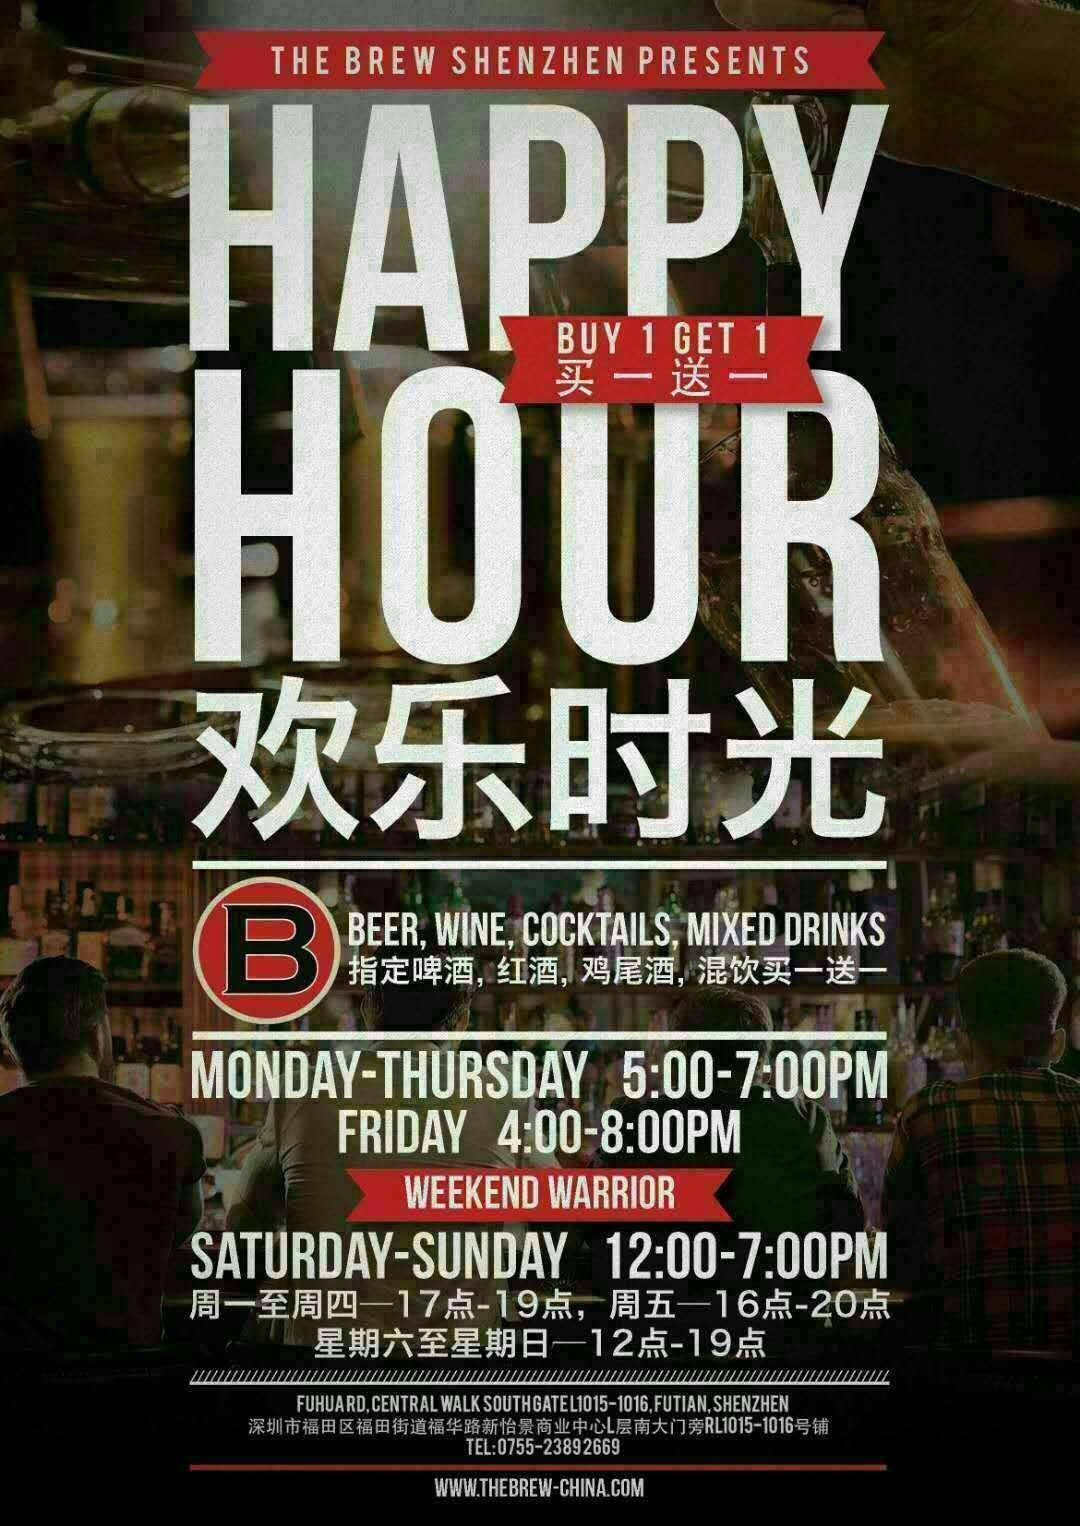 【The Brew】HAPPY HOUR Buy 1 Get 1 Free